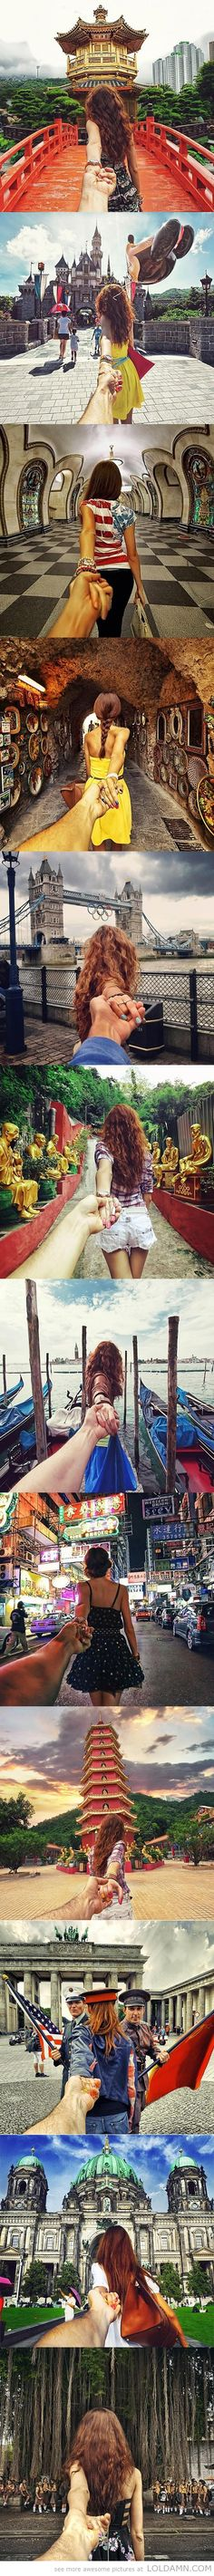 Photographer's girlfriend leads him around the world. Such a sweet idea and perspective | Murad Osmann